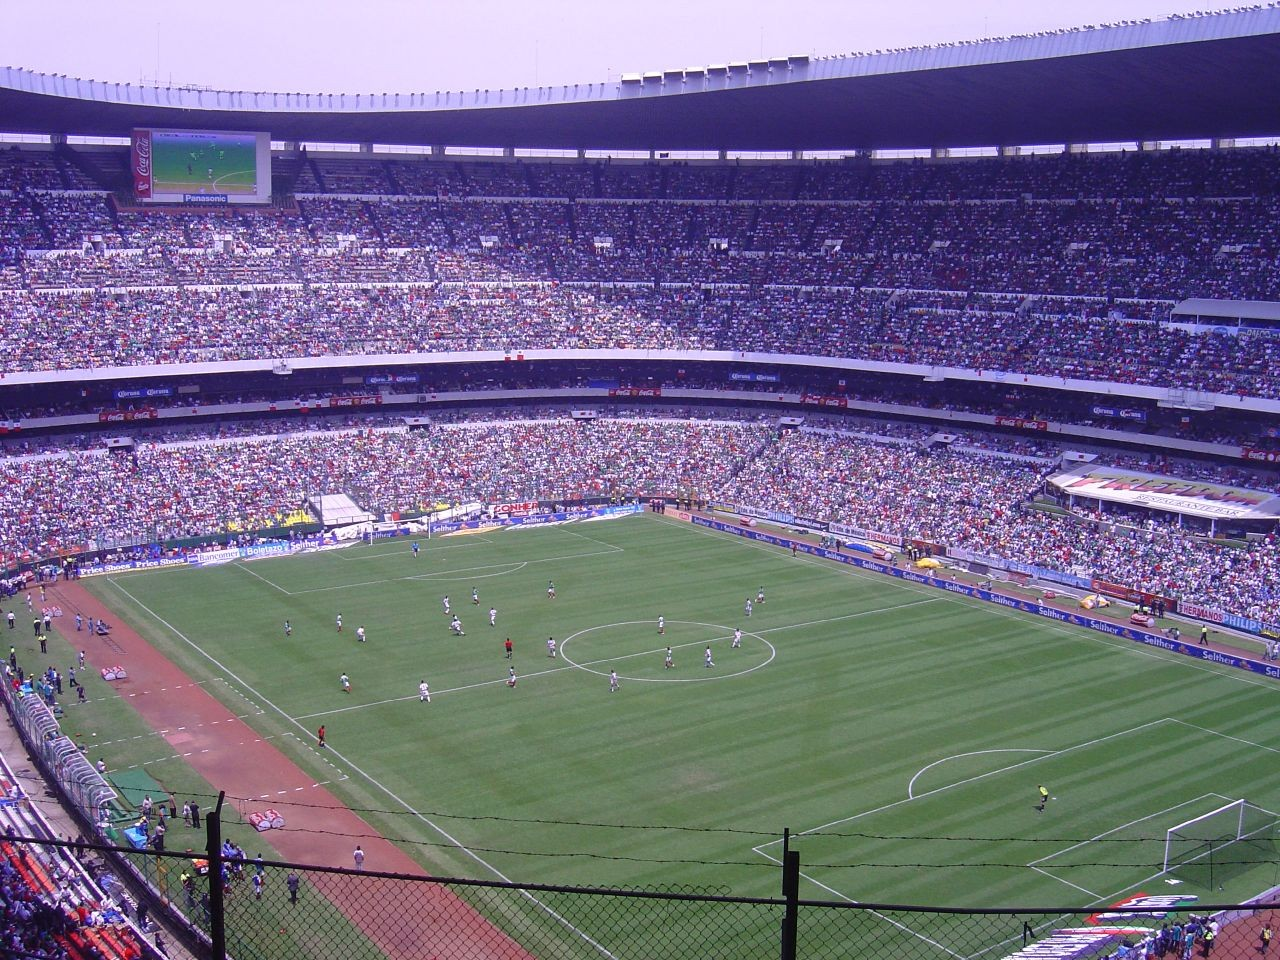 Estadio Azteca. Image © Heriberto Cortés Bravo [Flickr]